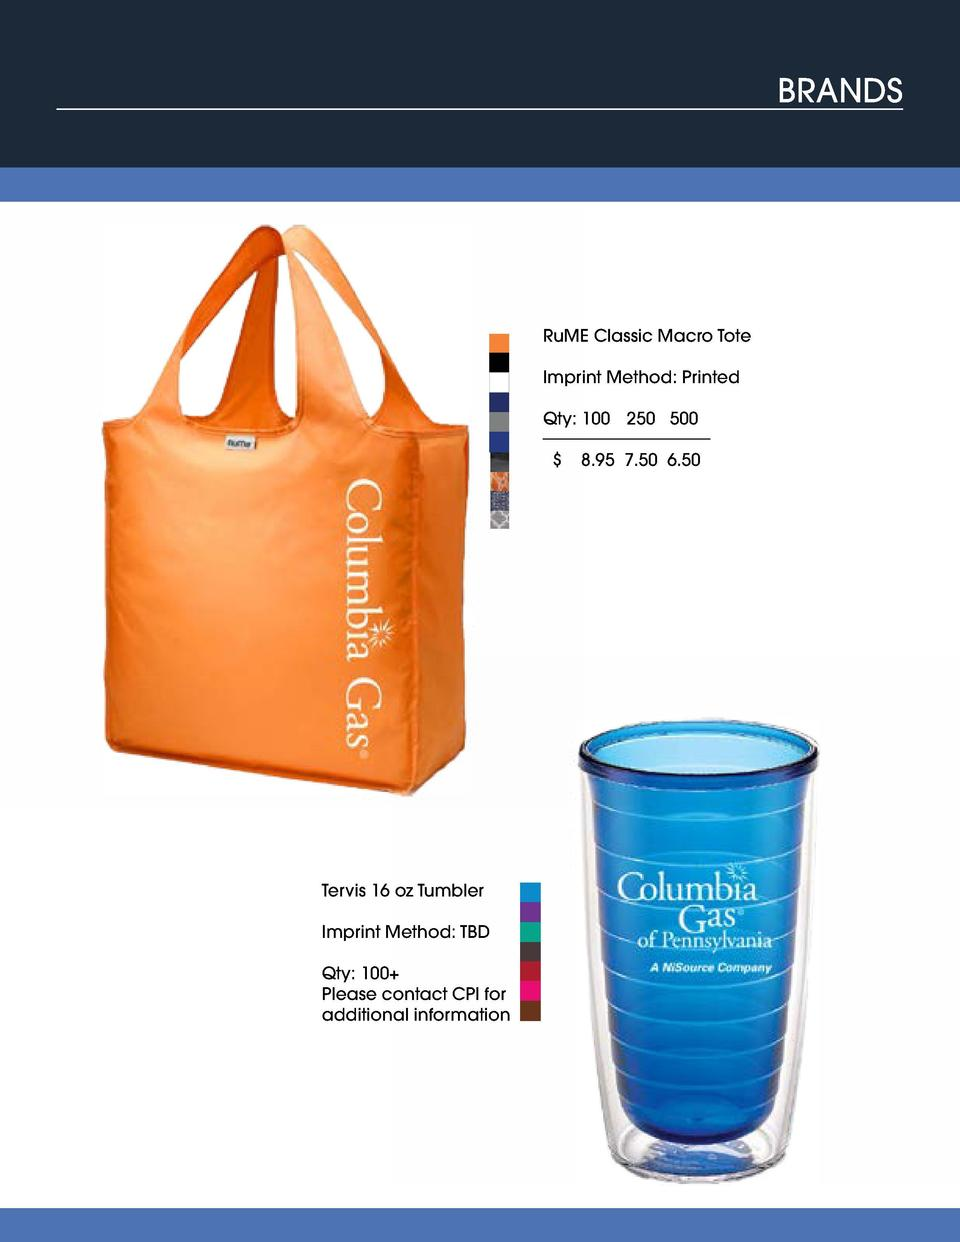 BRANDS  Igloo Avalanche Cooler RuME Classic Macro Tote  Imprint Method  Printed  Imprint Method  Printed  Qty  25  Qty  10...